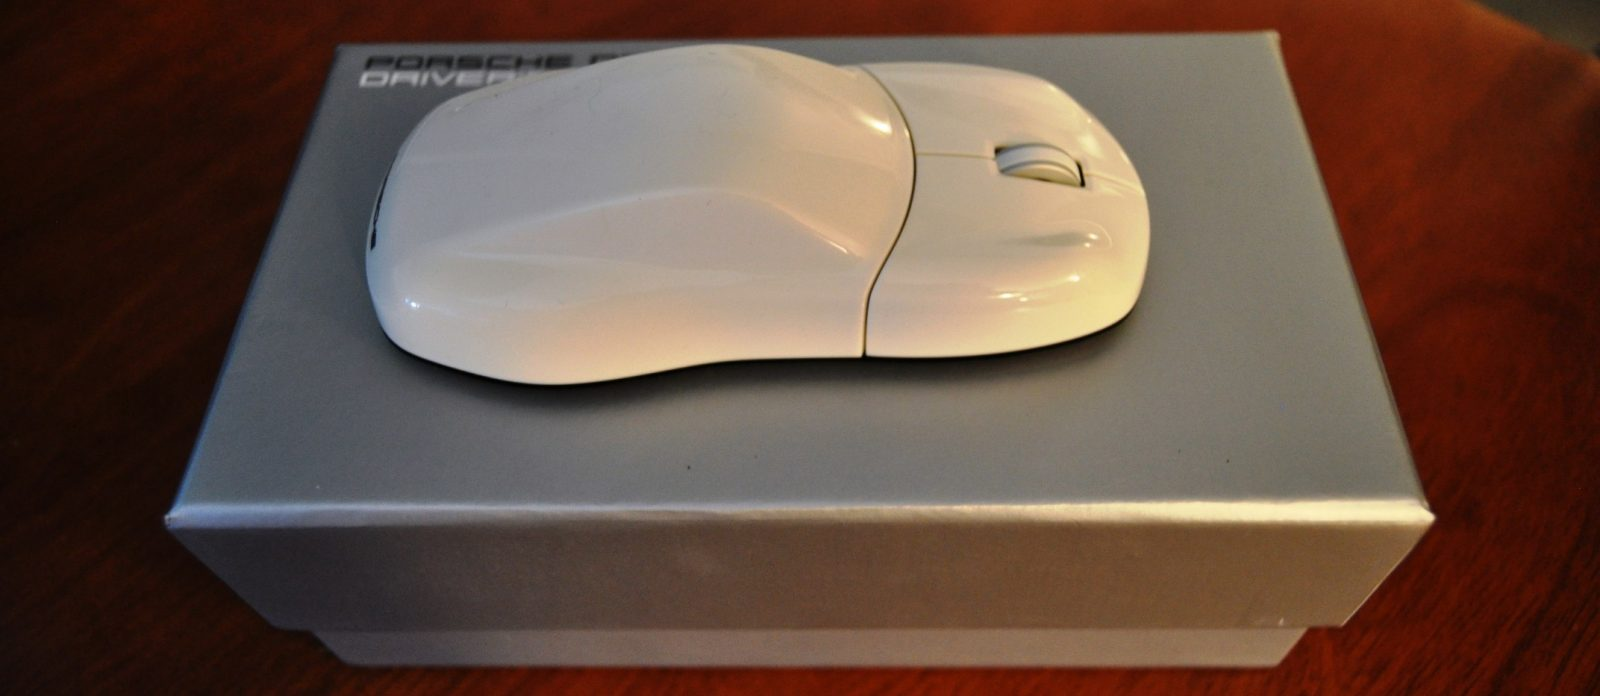 CarRevsDaily - Porsche Design Computer Mouse - Gadget Review 10